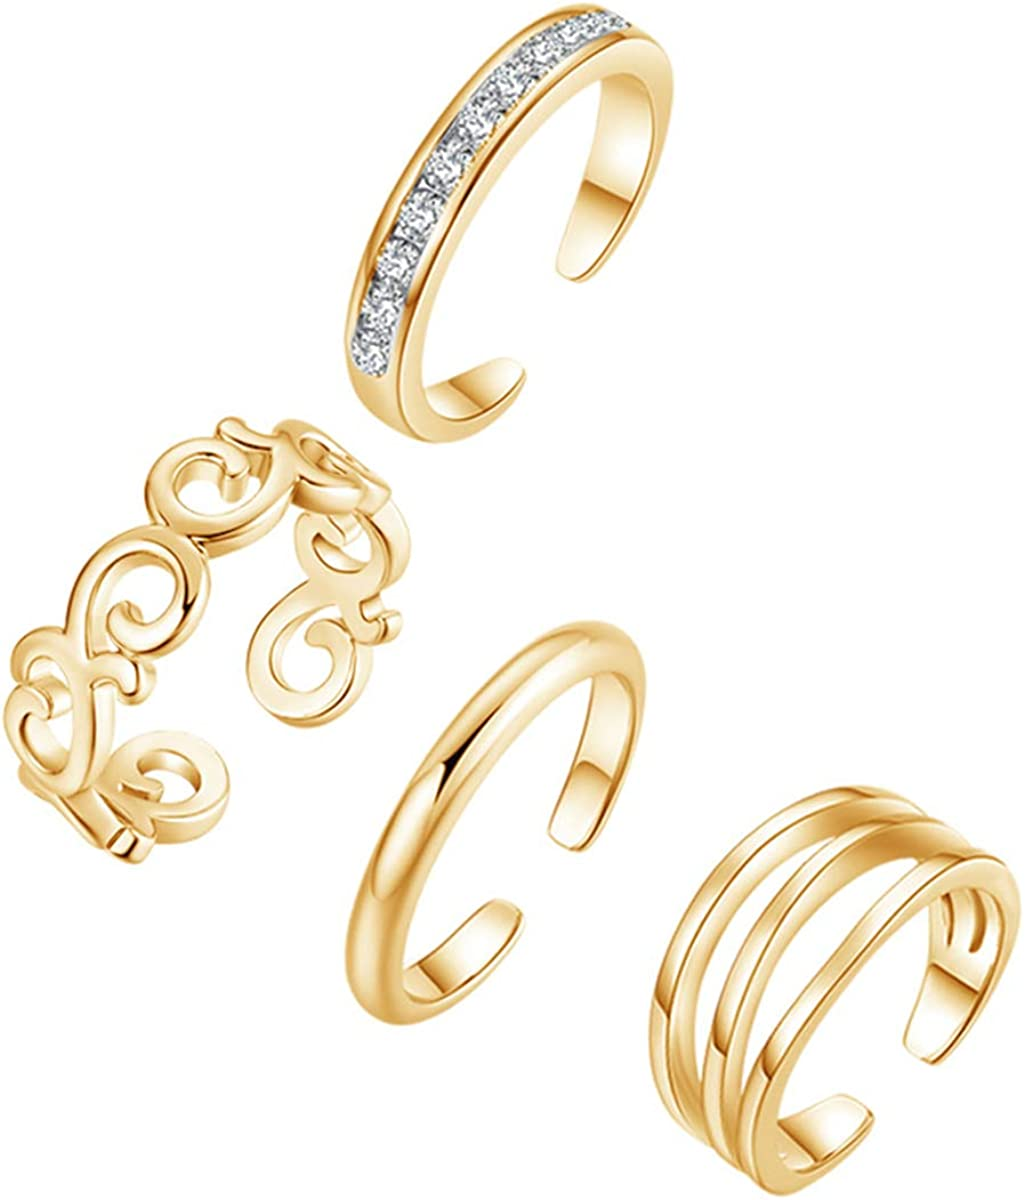 YAZILIND Sexy Simple Foot Toe Ring Opening Adjustable Feet Rings Set Jewelry-4 Pieces